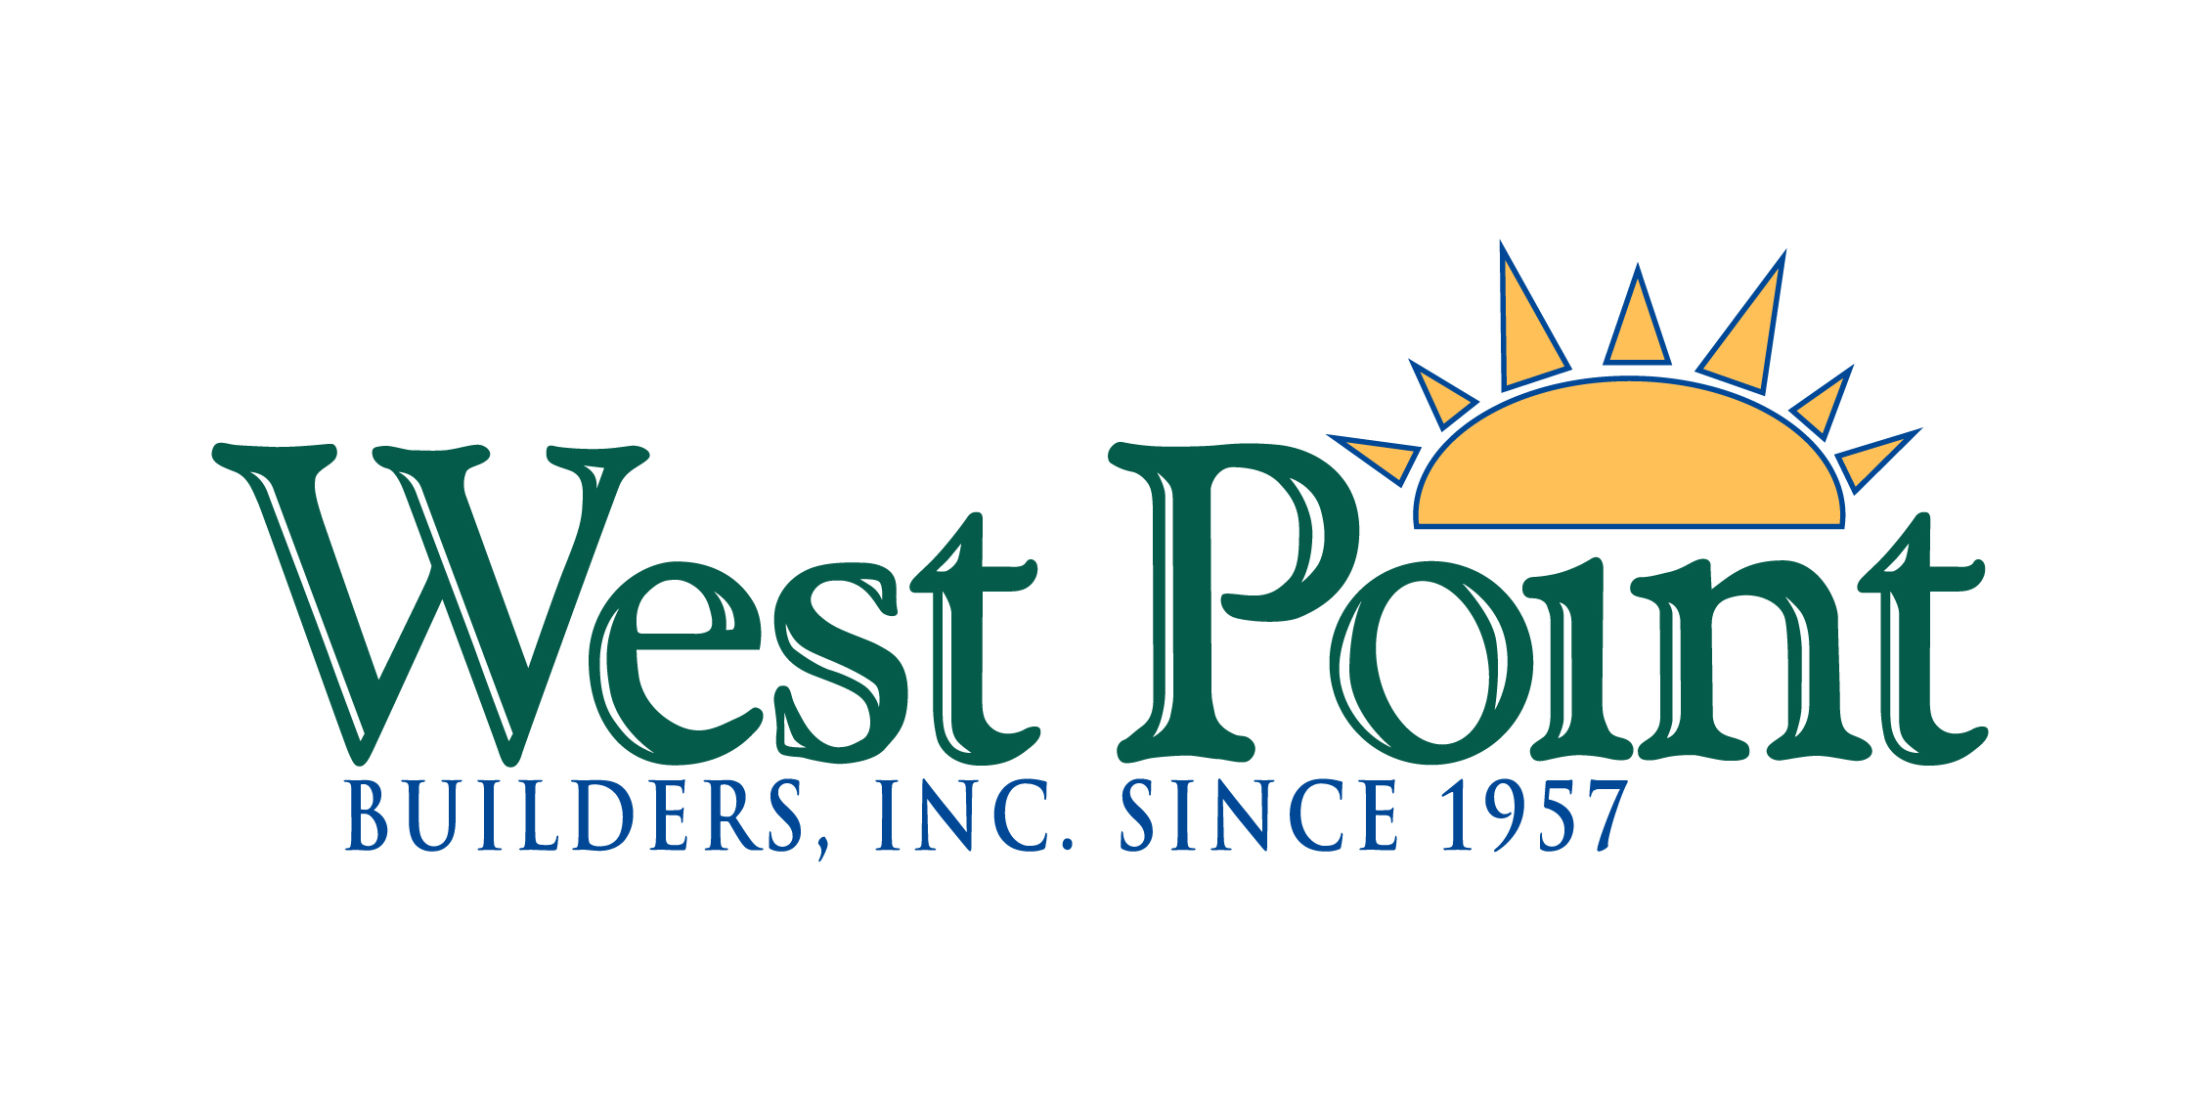 West Point Builders